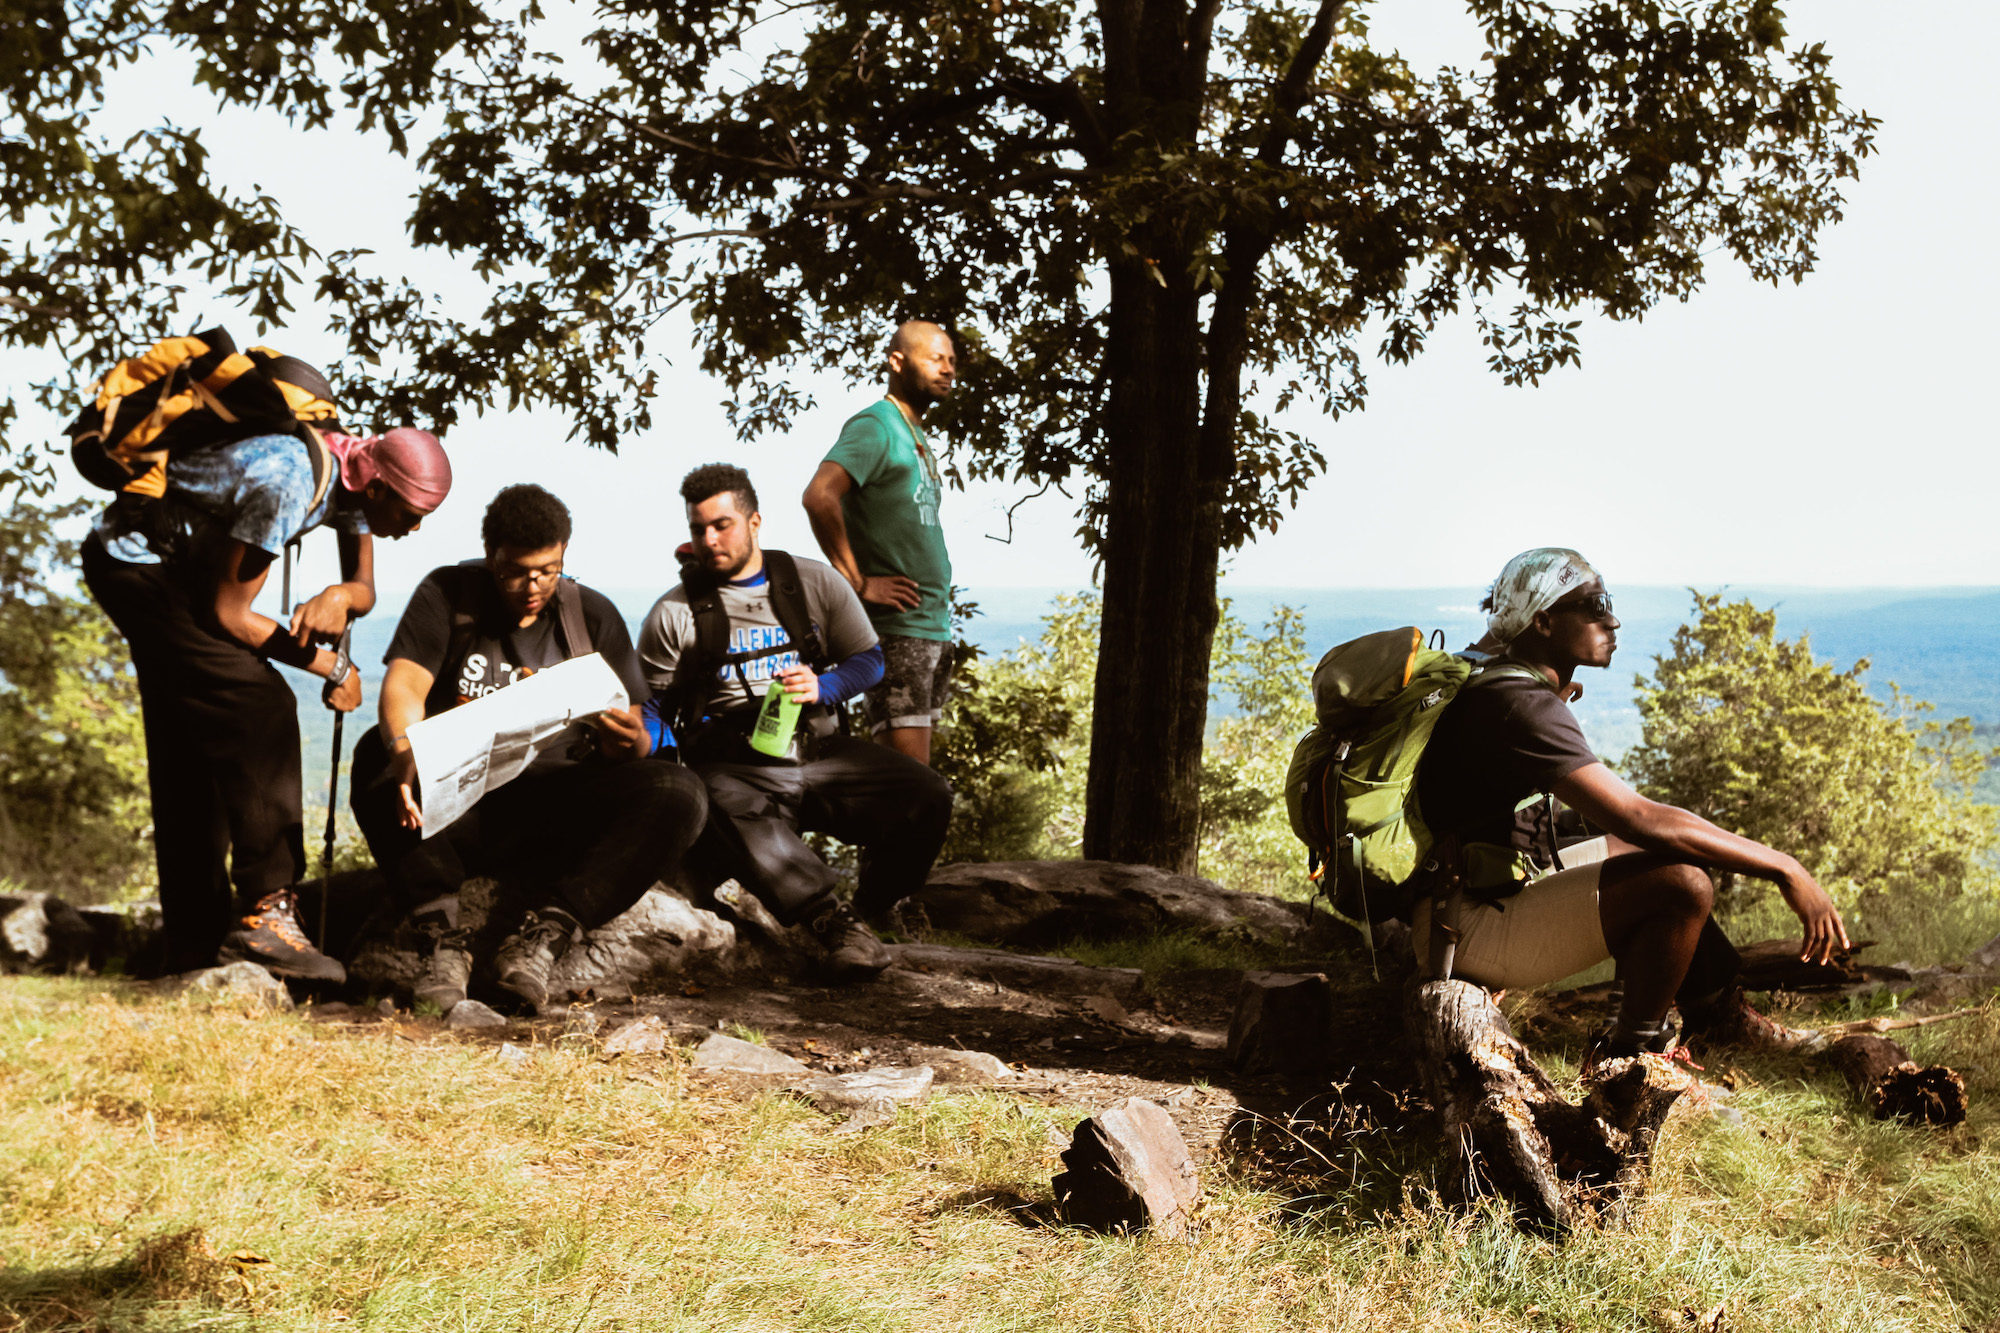 c2c mohican august 25th 2019-259.JPG